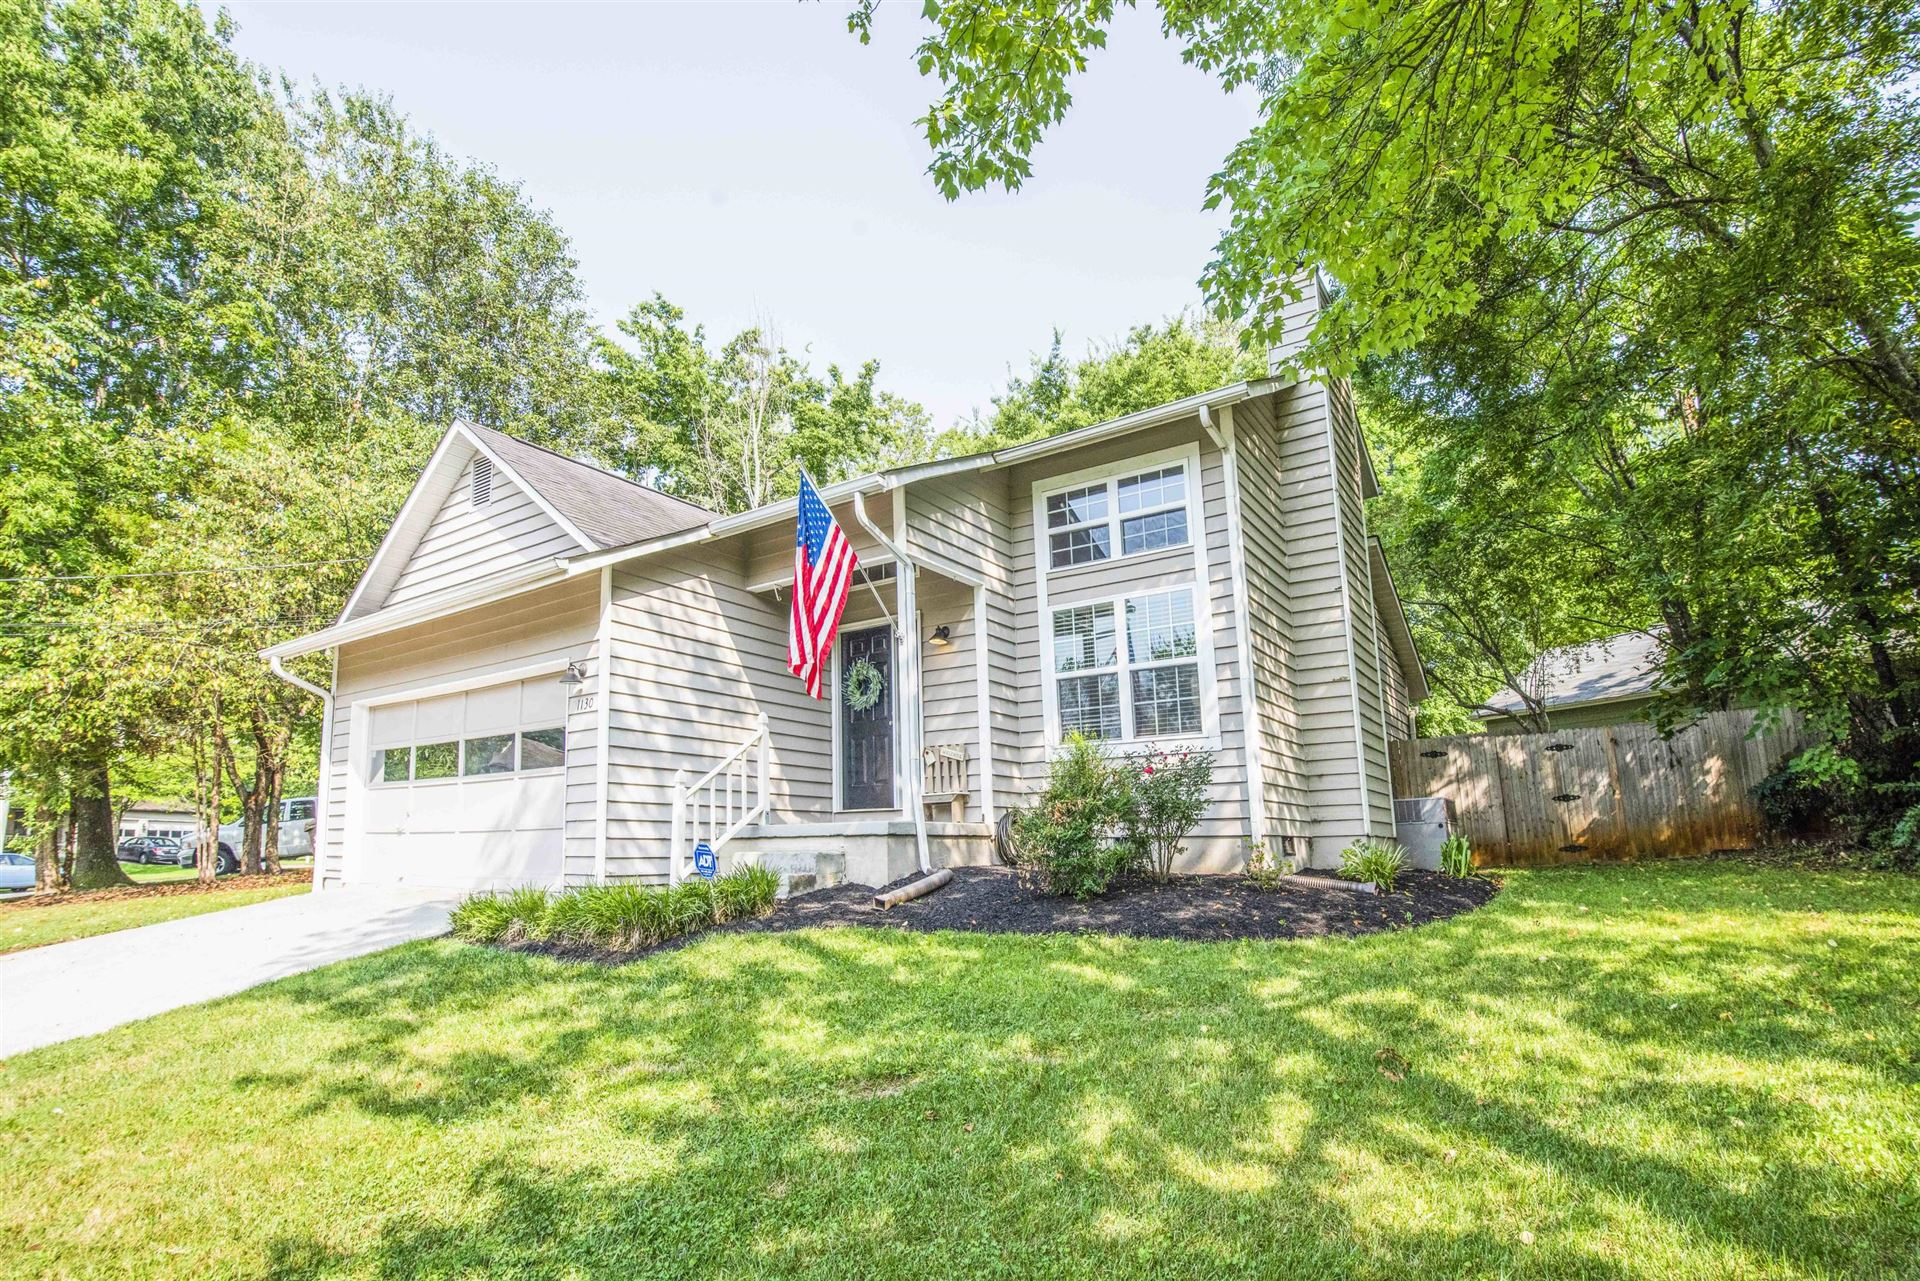 Photo of 1130 Durham Rd, Knoxville, TN 37931 (MLS # 1162572)